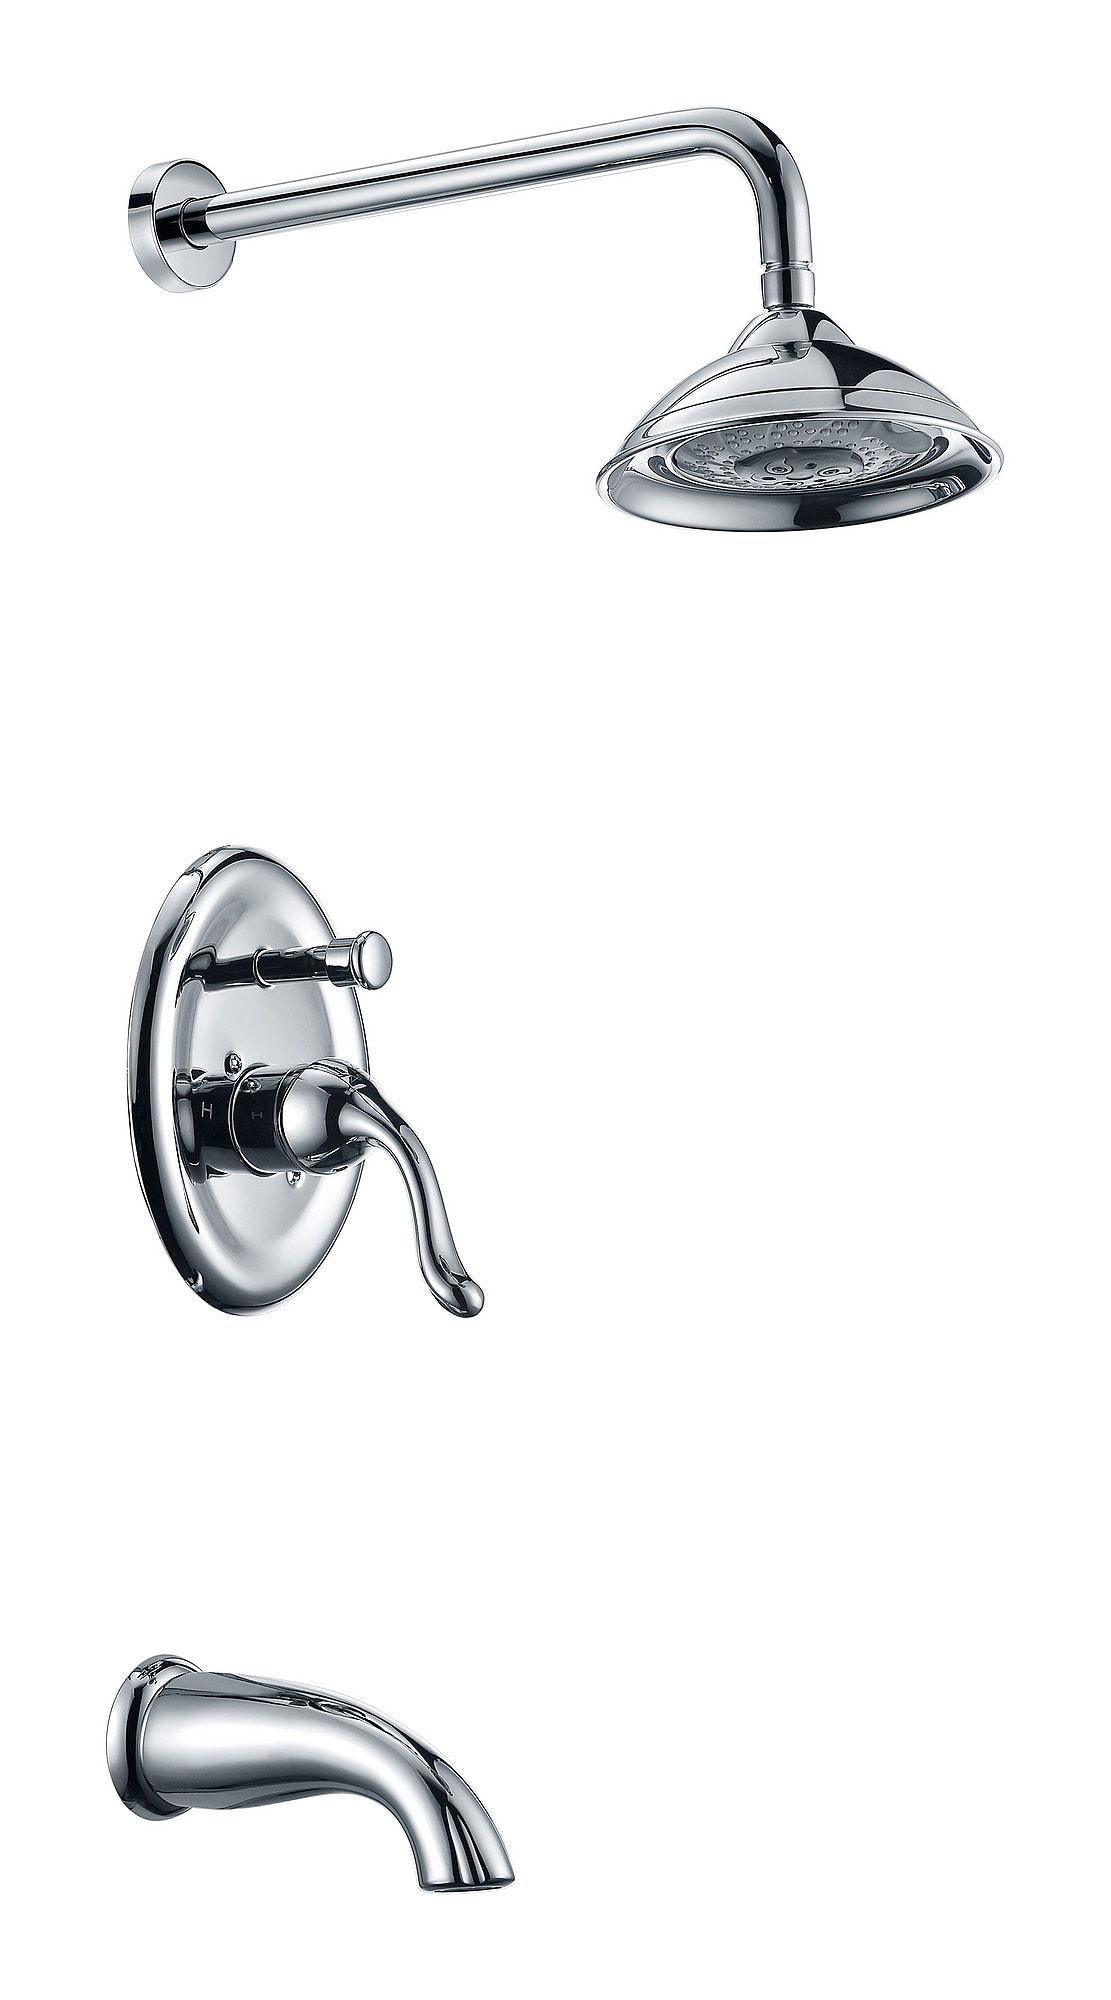 ANZZI SH-AZ036 Assai Series Tub and Shower Faucet System In Polished Chrome